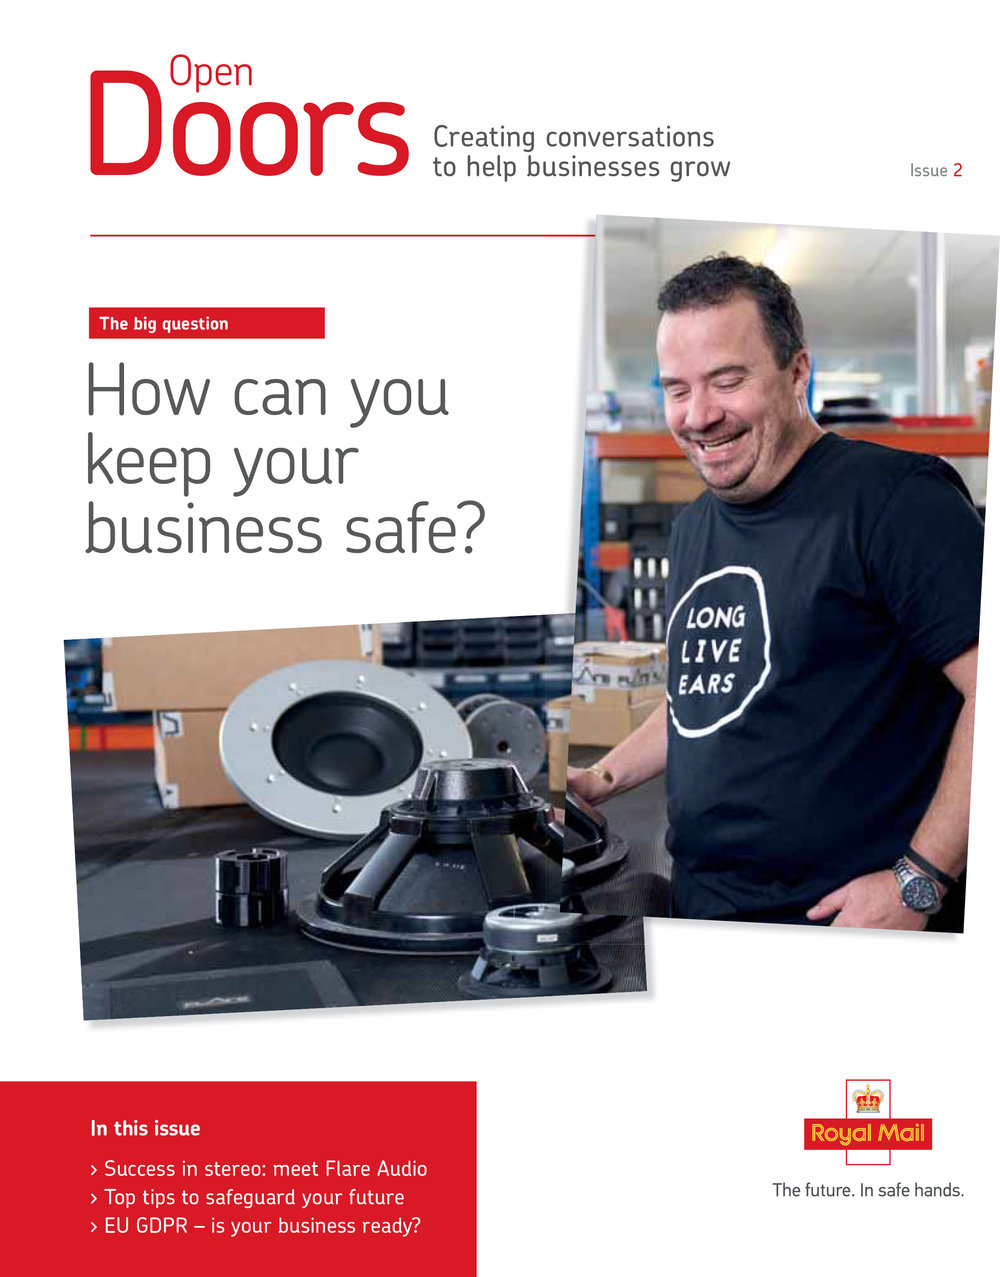 Open Doors Magazine - Creating conversations to help businesses